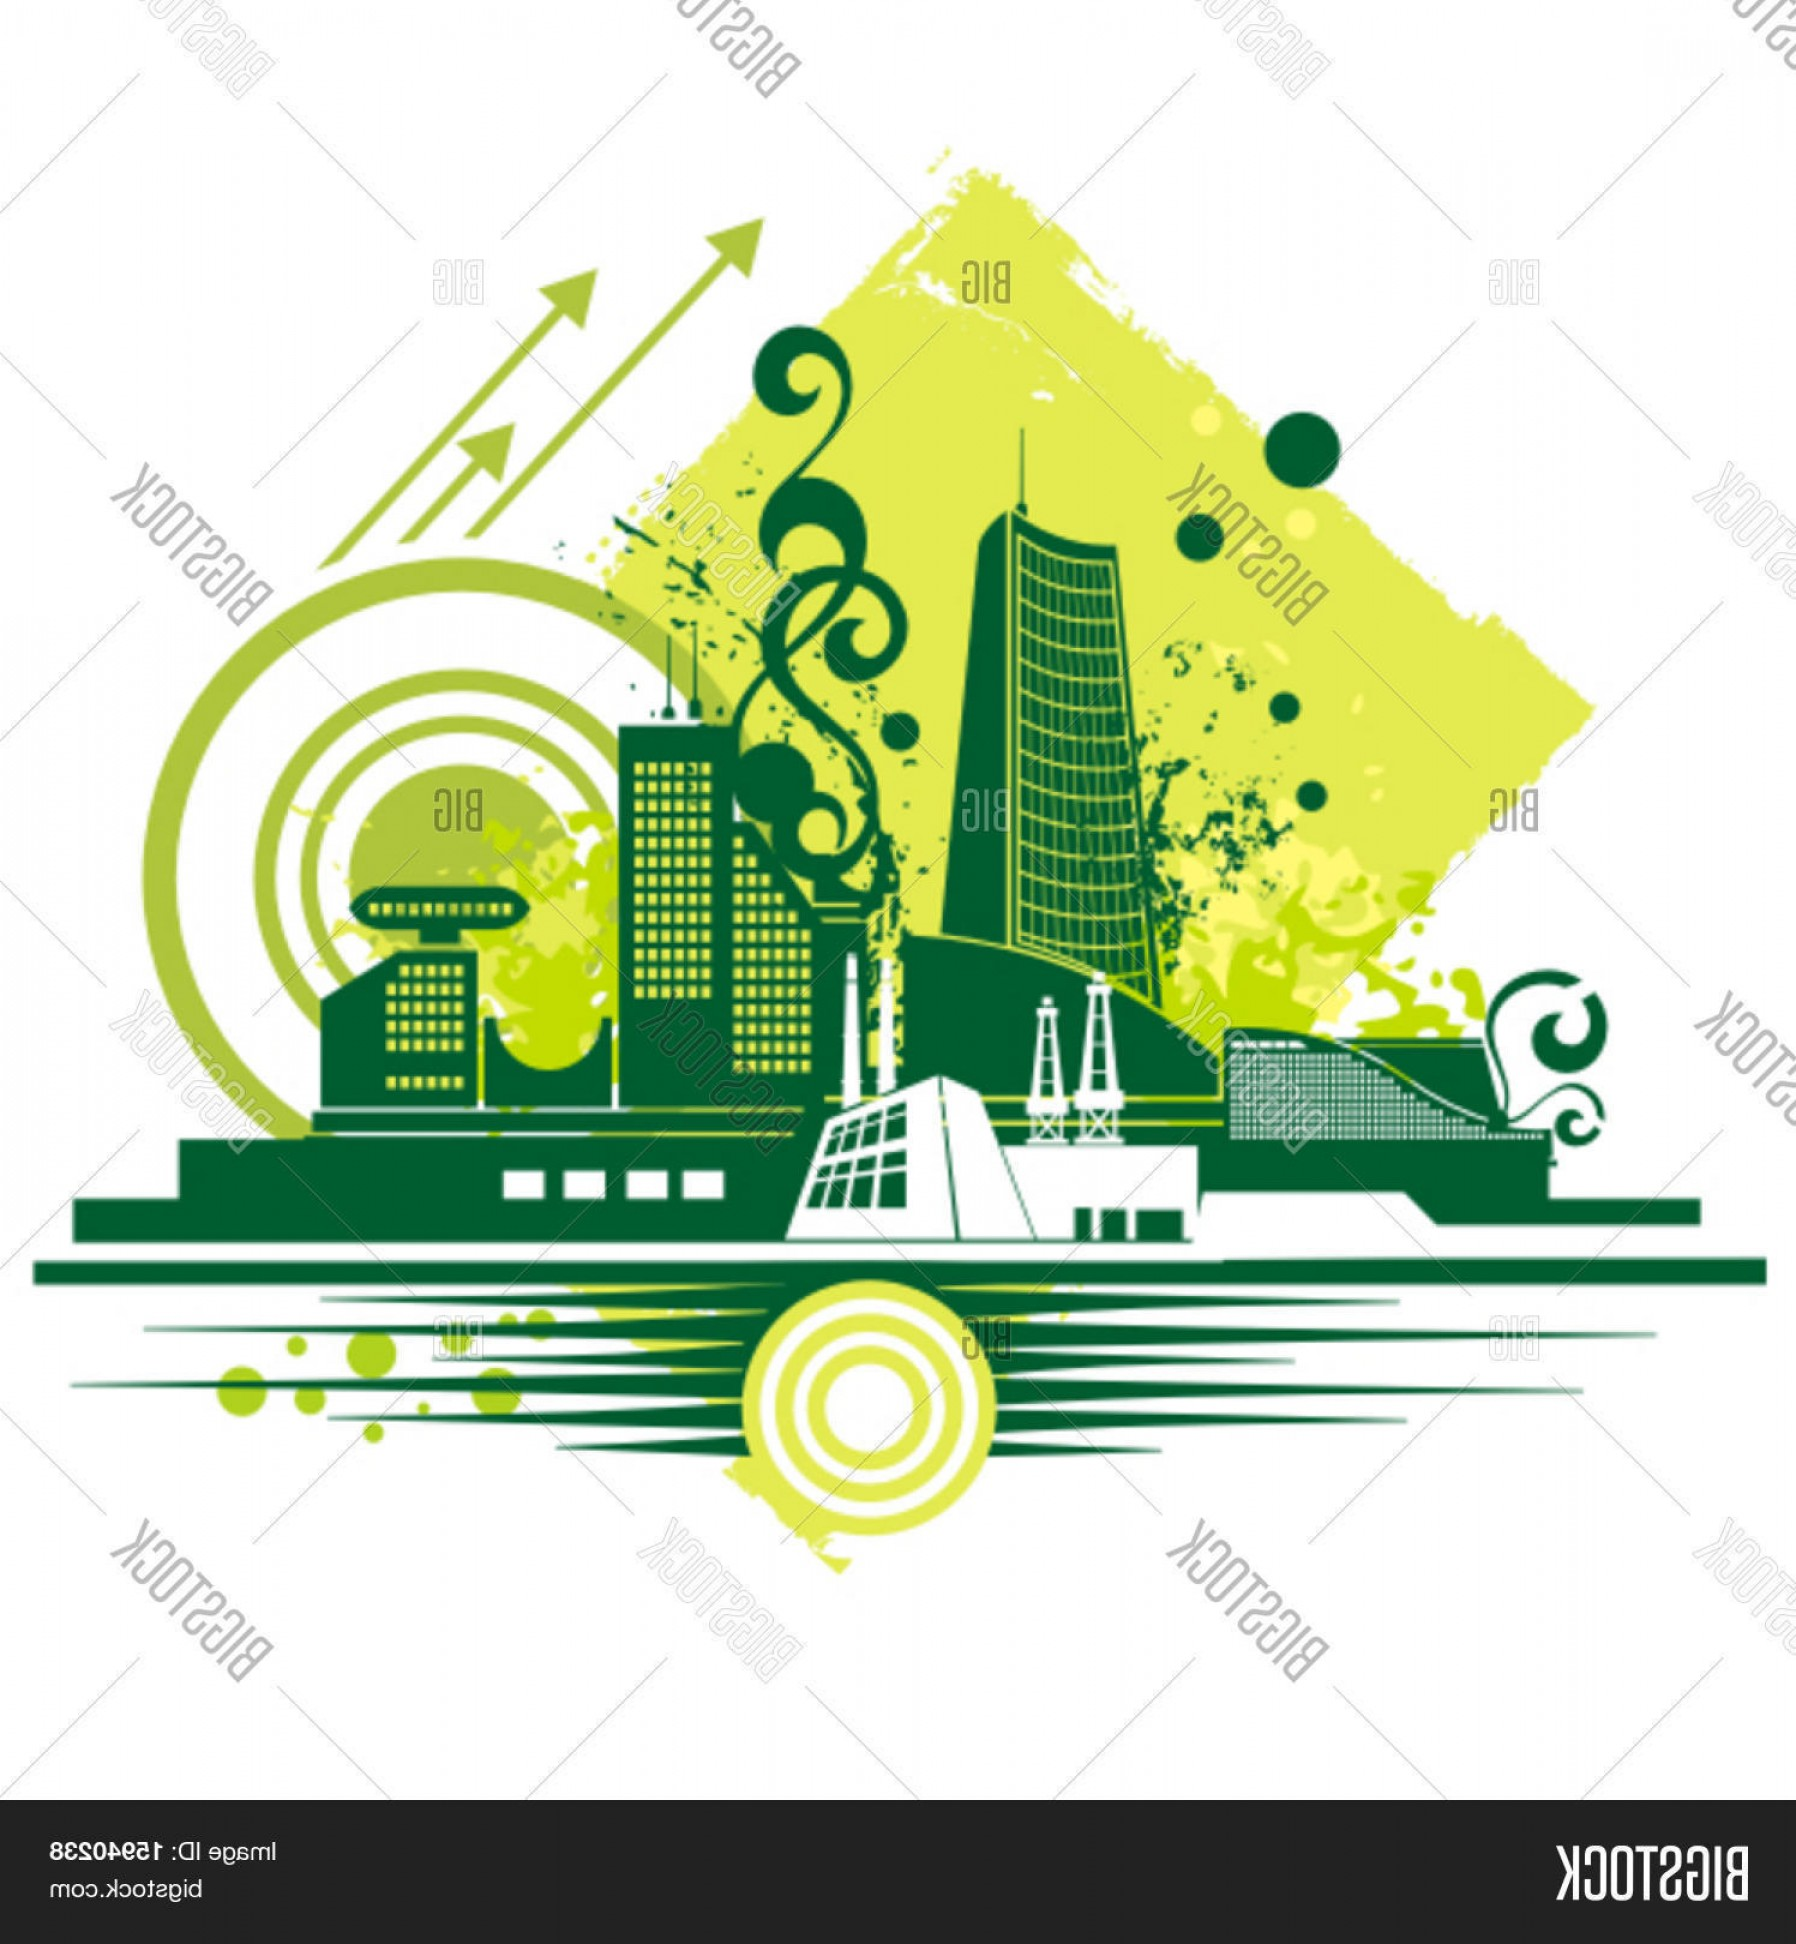 Swirl Arrow Clip Art Vector: Stock Vector Urban Buildings Background Seriesc Vector Illustration With Grungec Arrowc Swirl And Circle Details